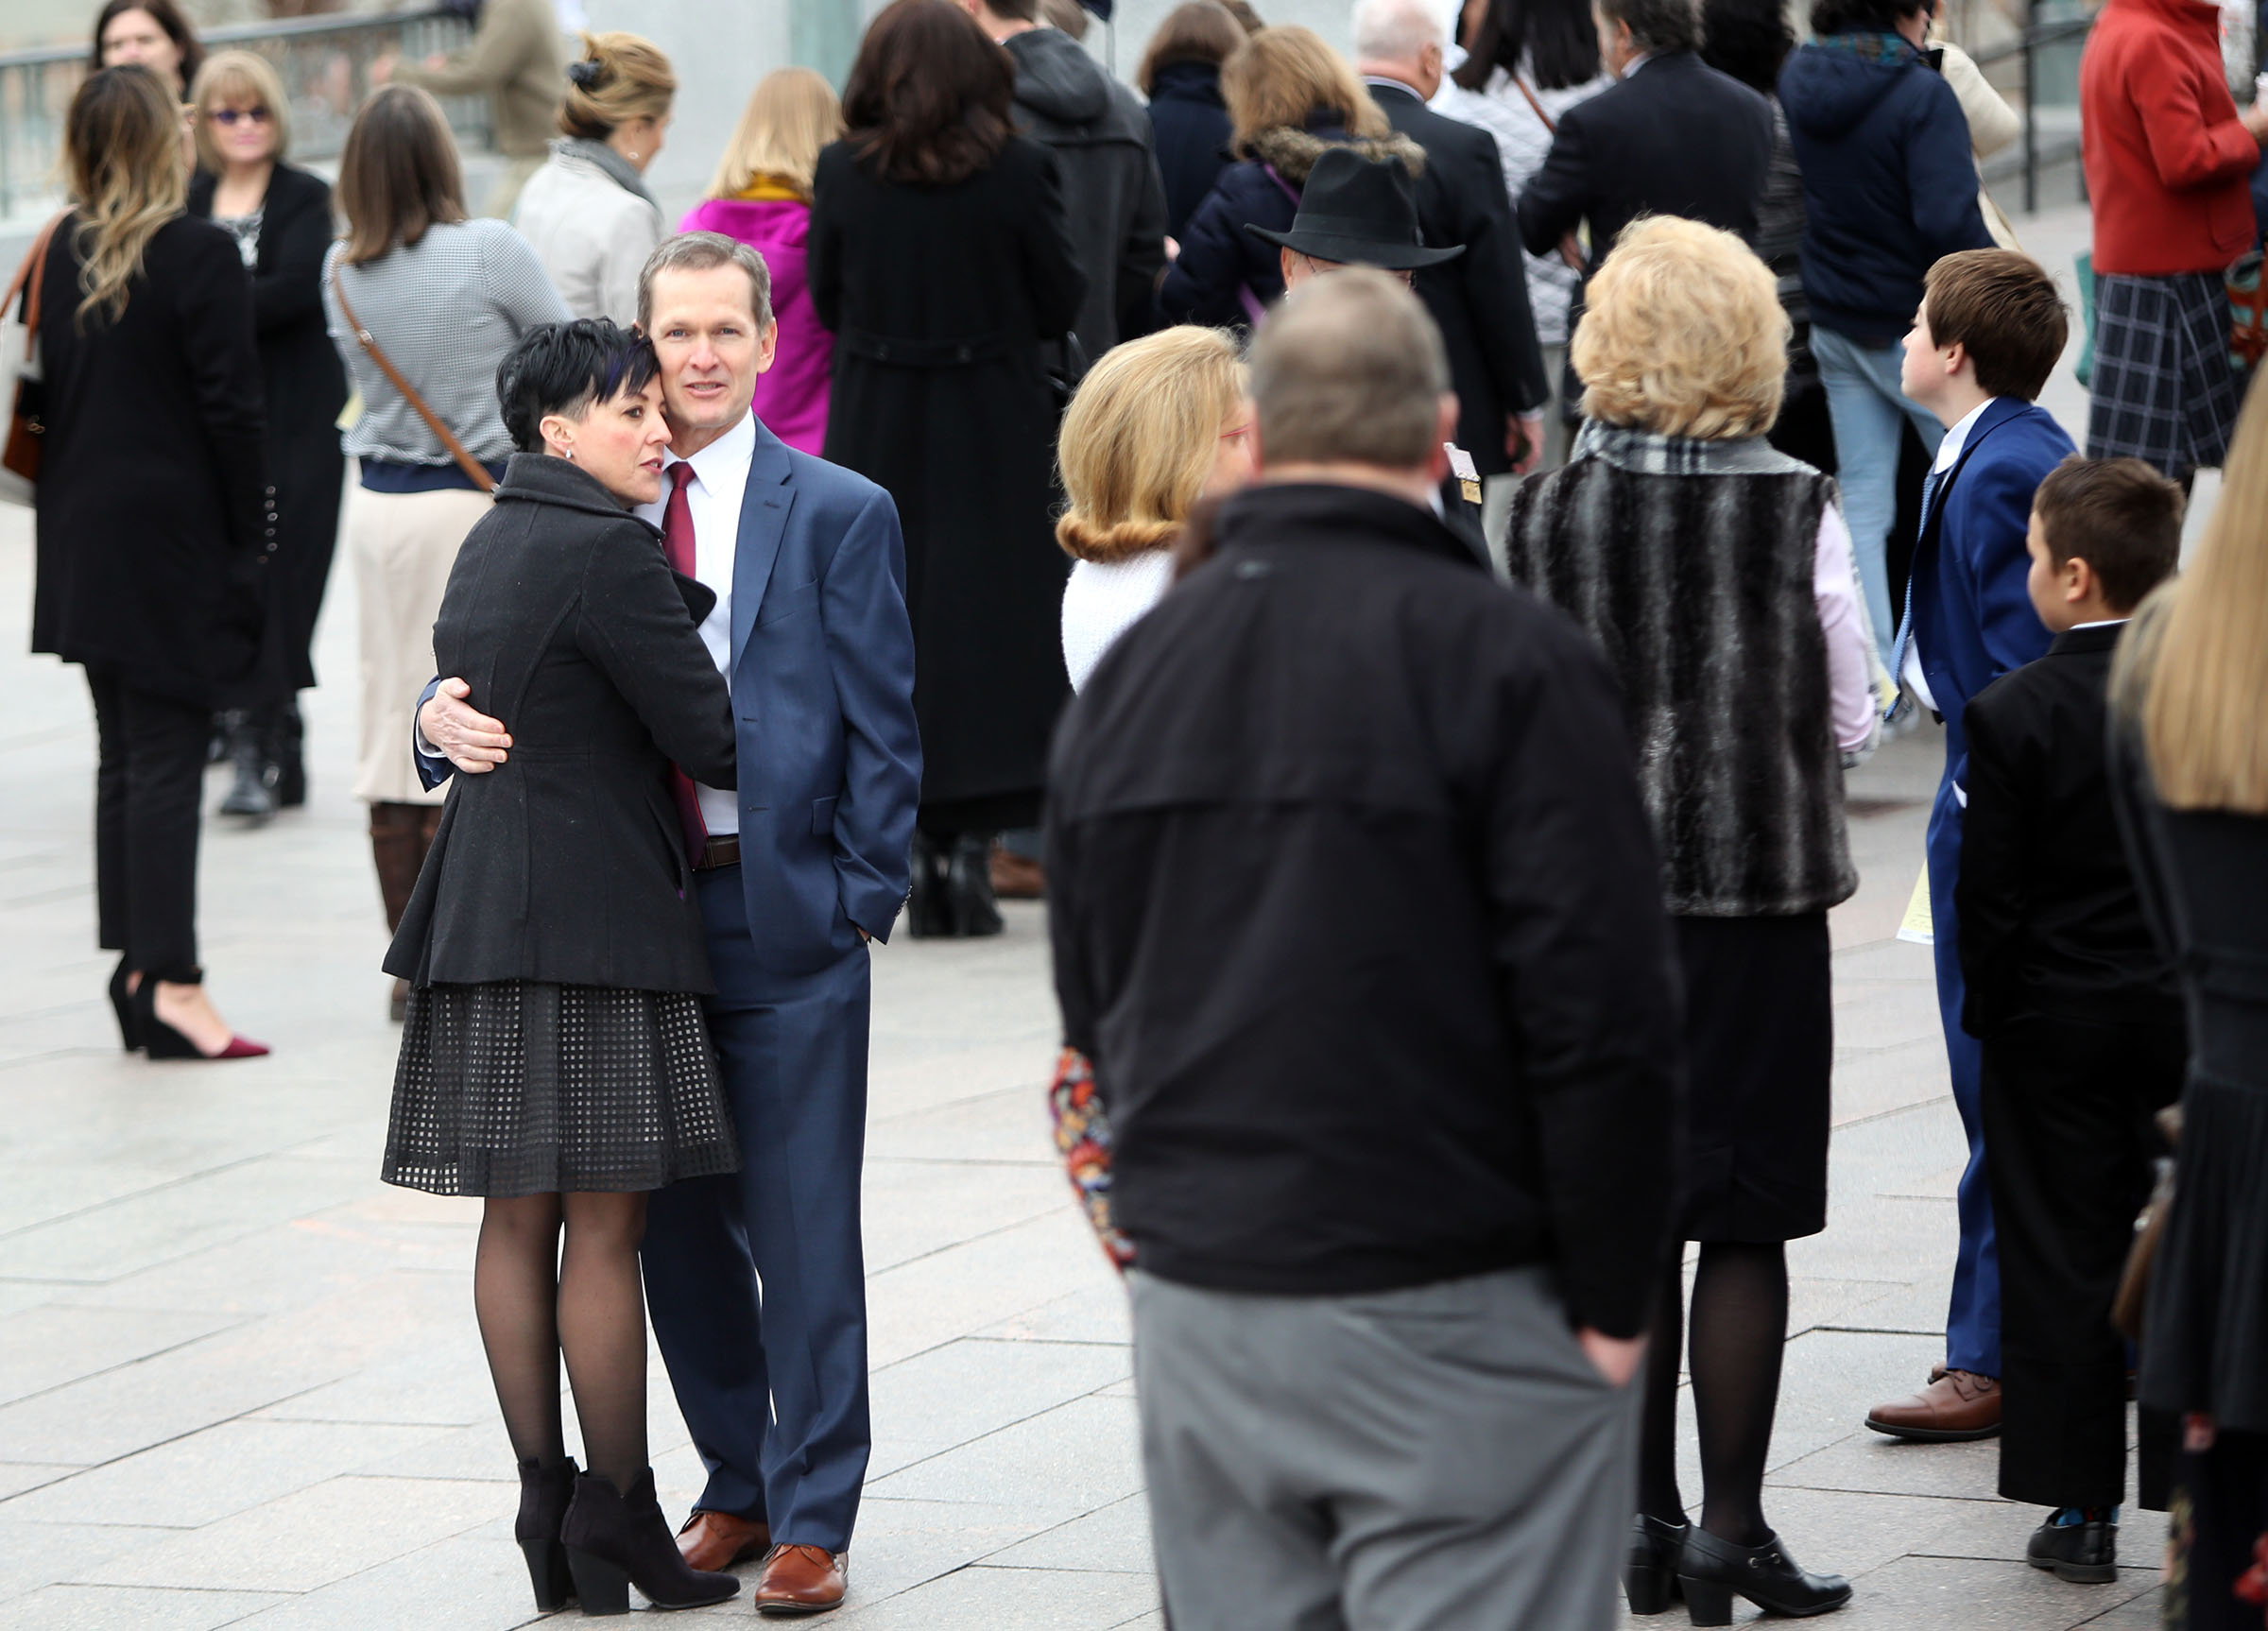 People line up outside the Conference Center for President Thomas S. Monson's funeral in Salt Lake City on Friday, Jan. 12, 2018.